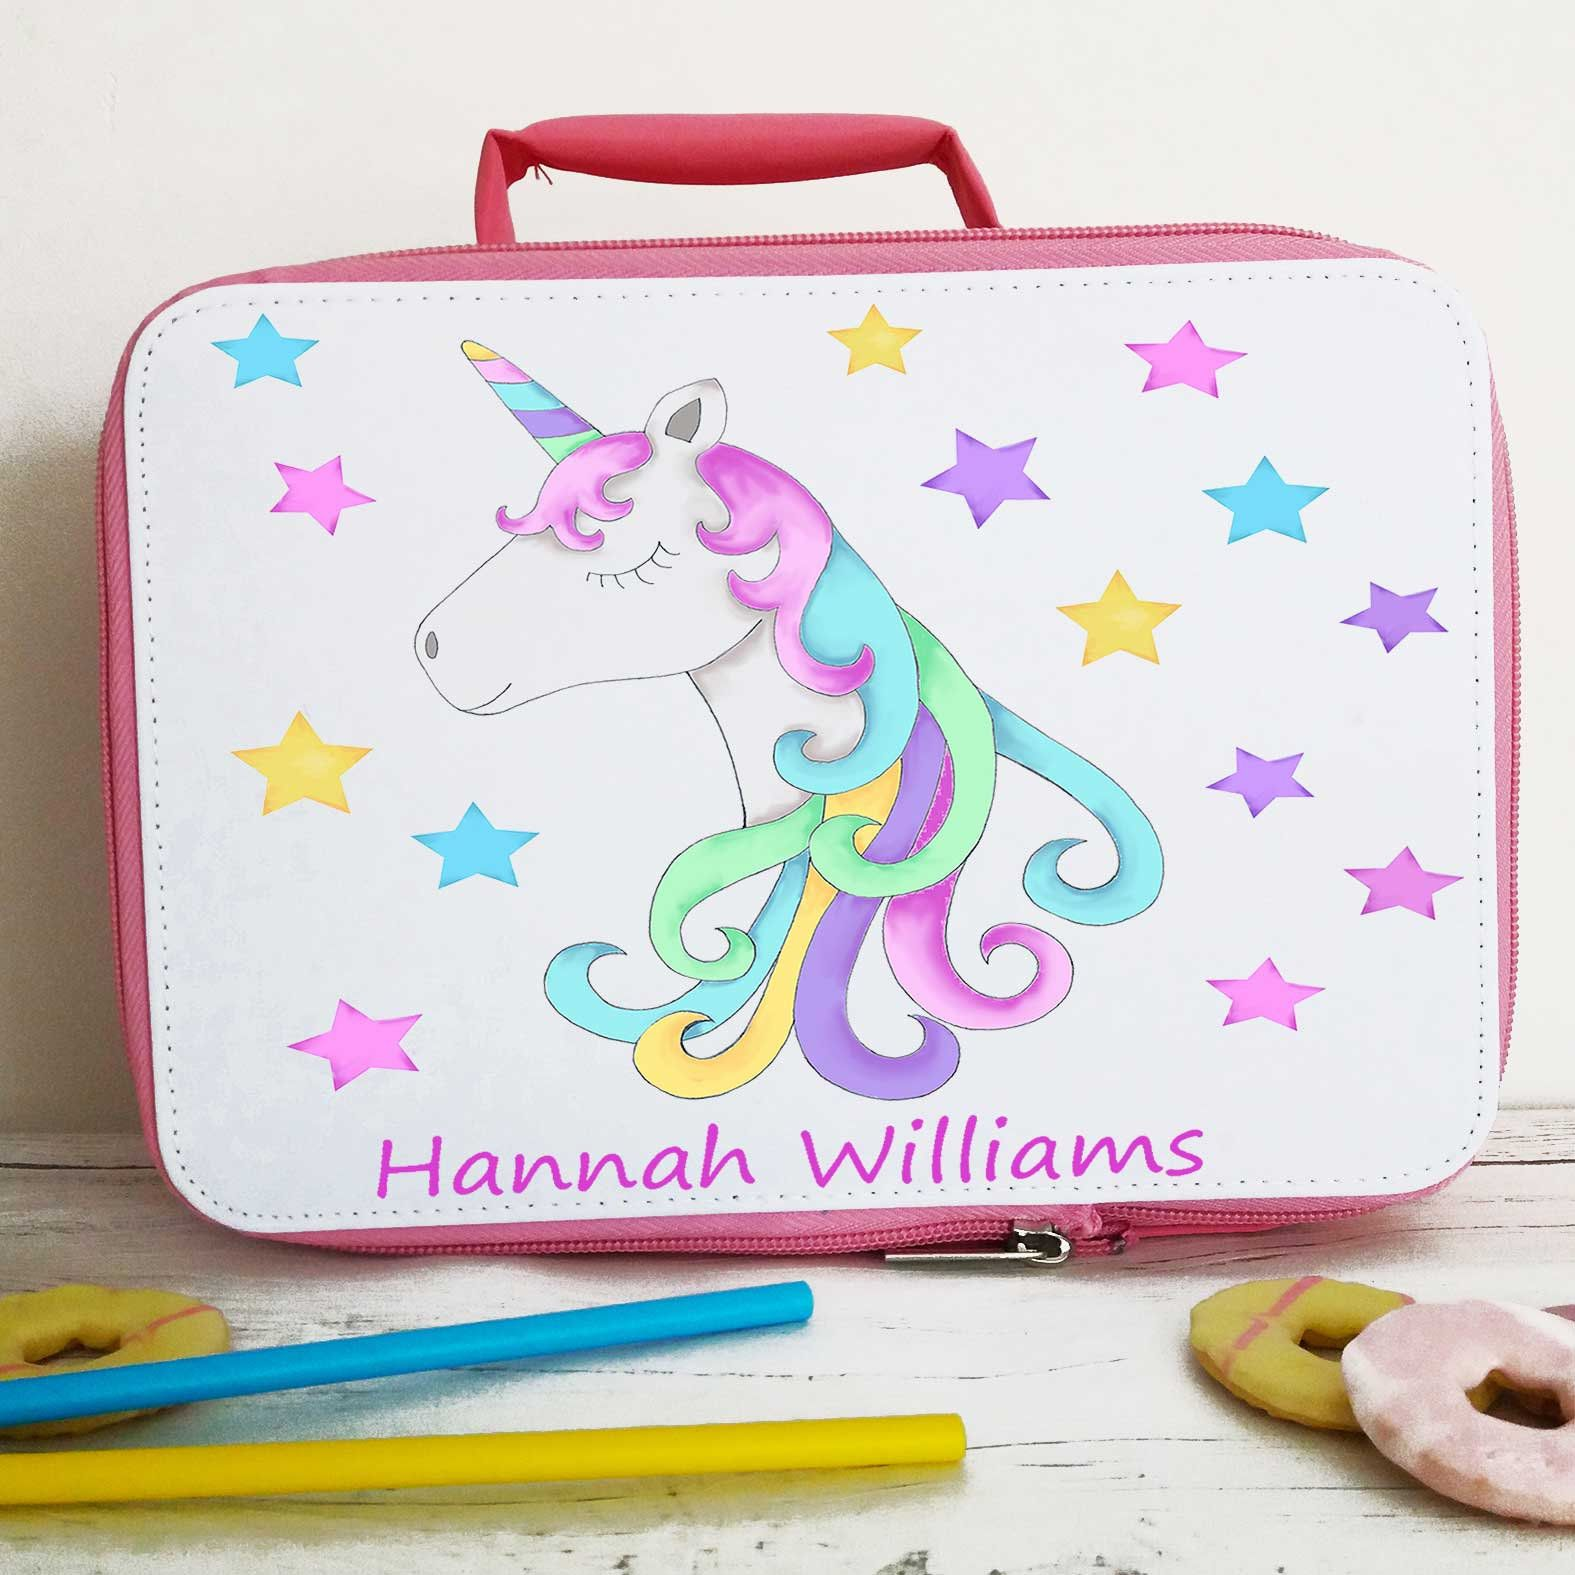 S Personalised Lunch Bag Insulated